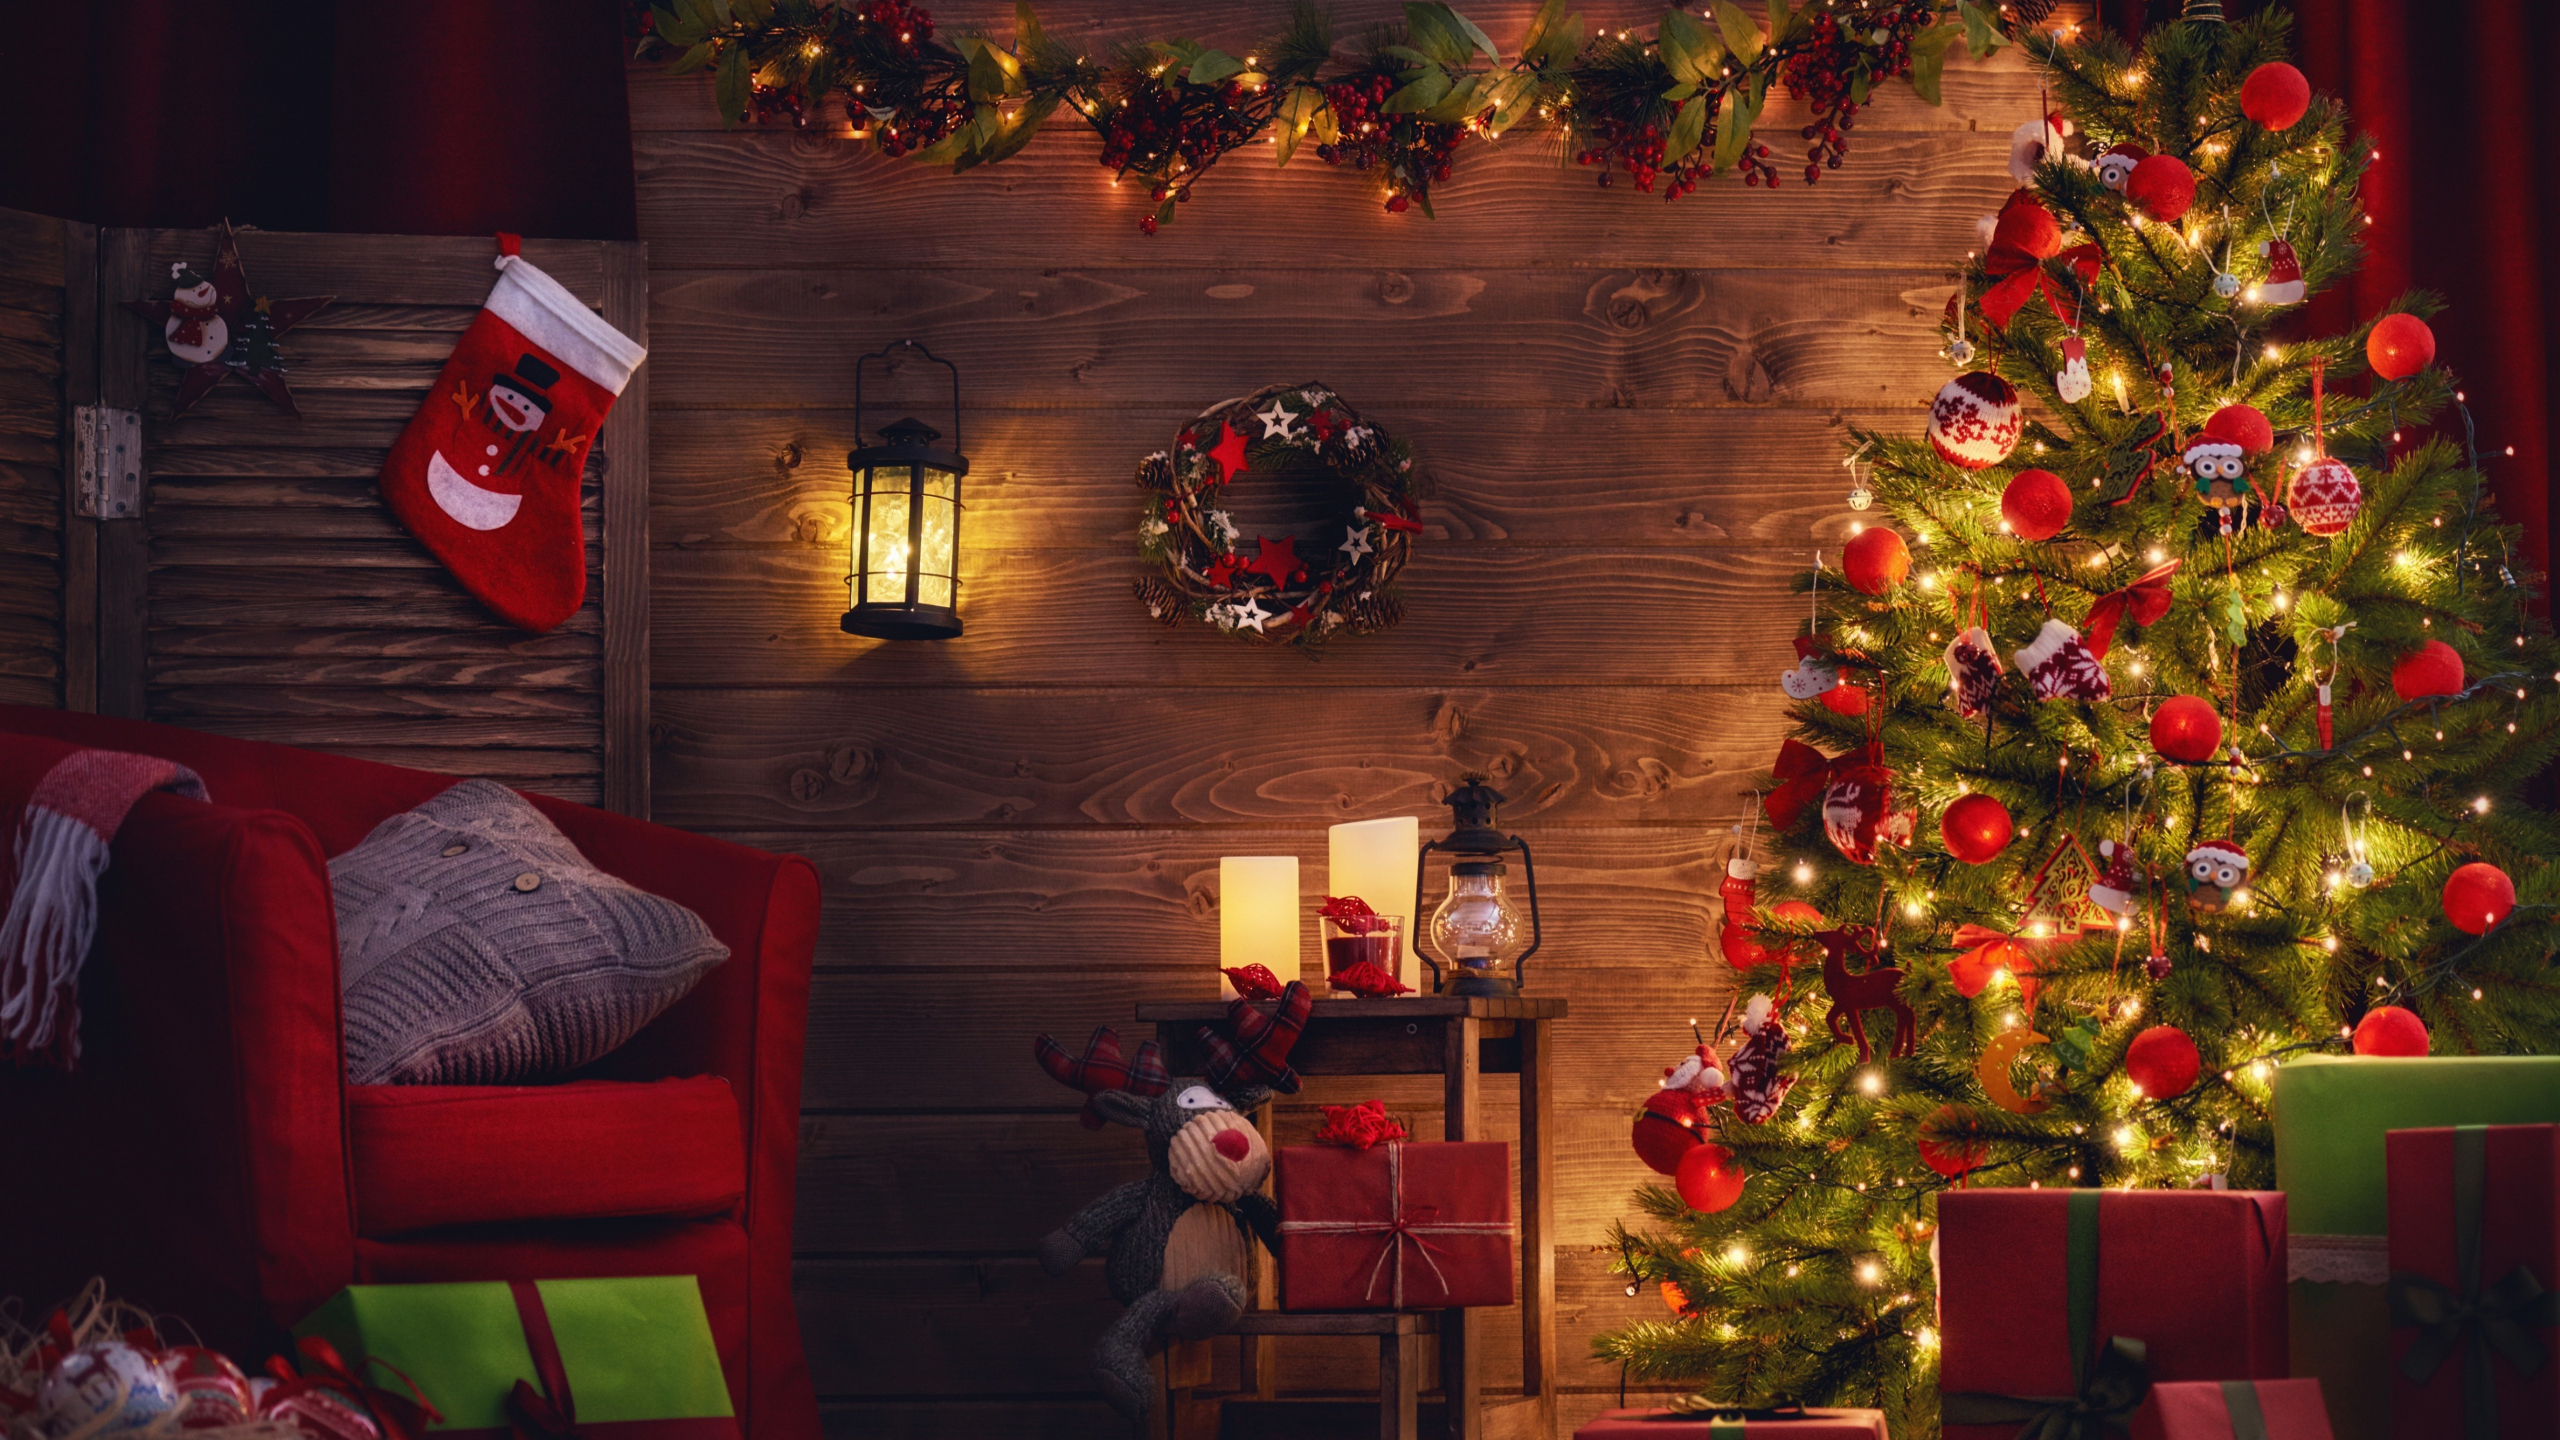 Download 2560x1440 Wallpaper Christmas Tree Holiday Decorations Gifts Dual Wide Widescreen 16 9 Widescreen 2560x1440 Hd Image Background 1681